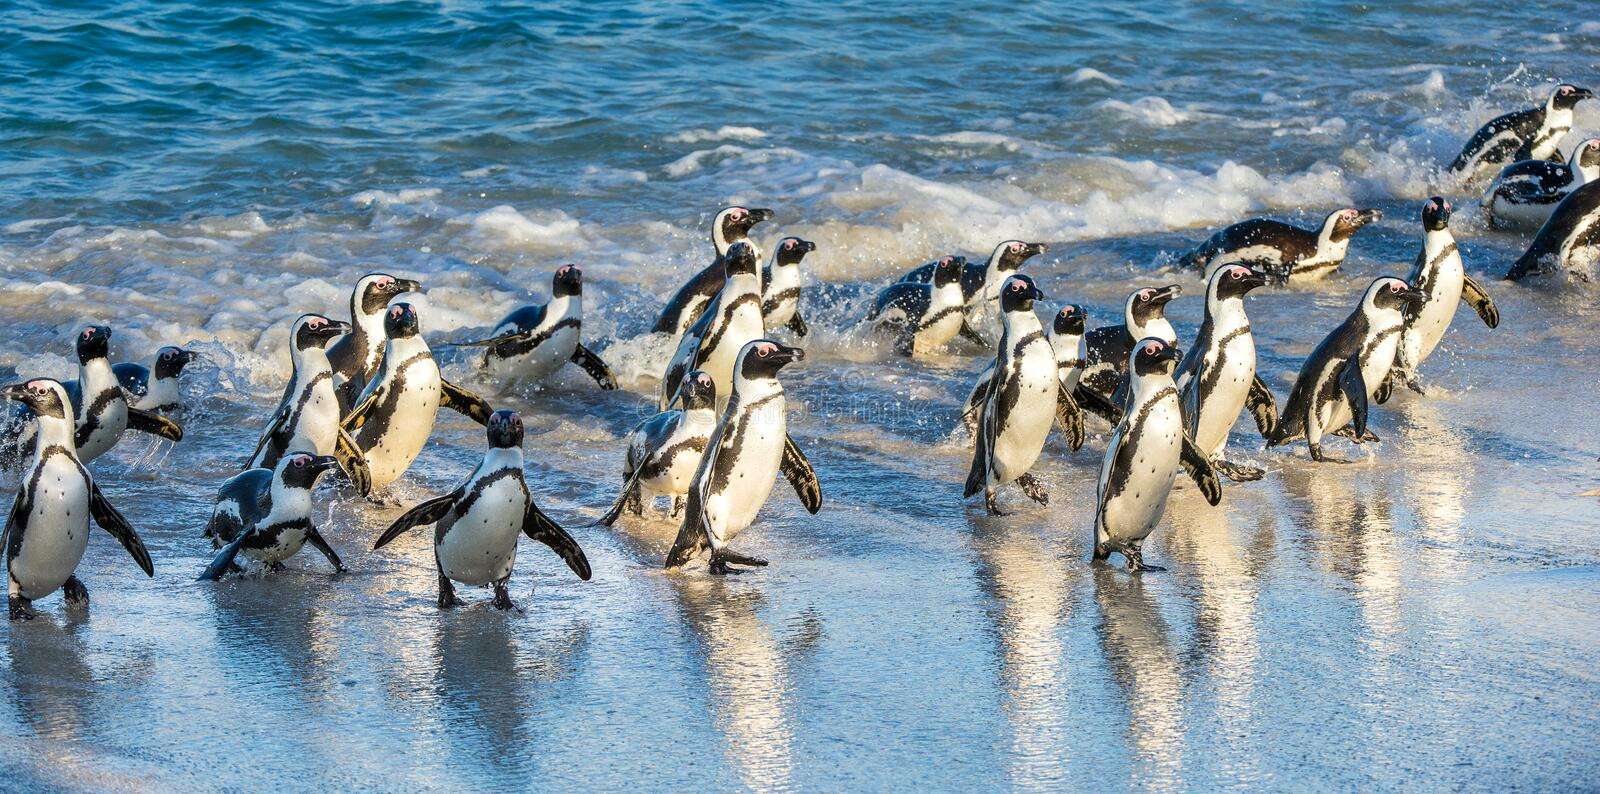 African penguins walk out of the ocean on the sandy beach. African penguin Spheniscus demersus also known as the pengui stock photos